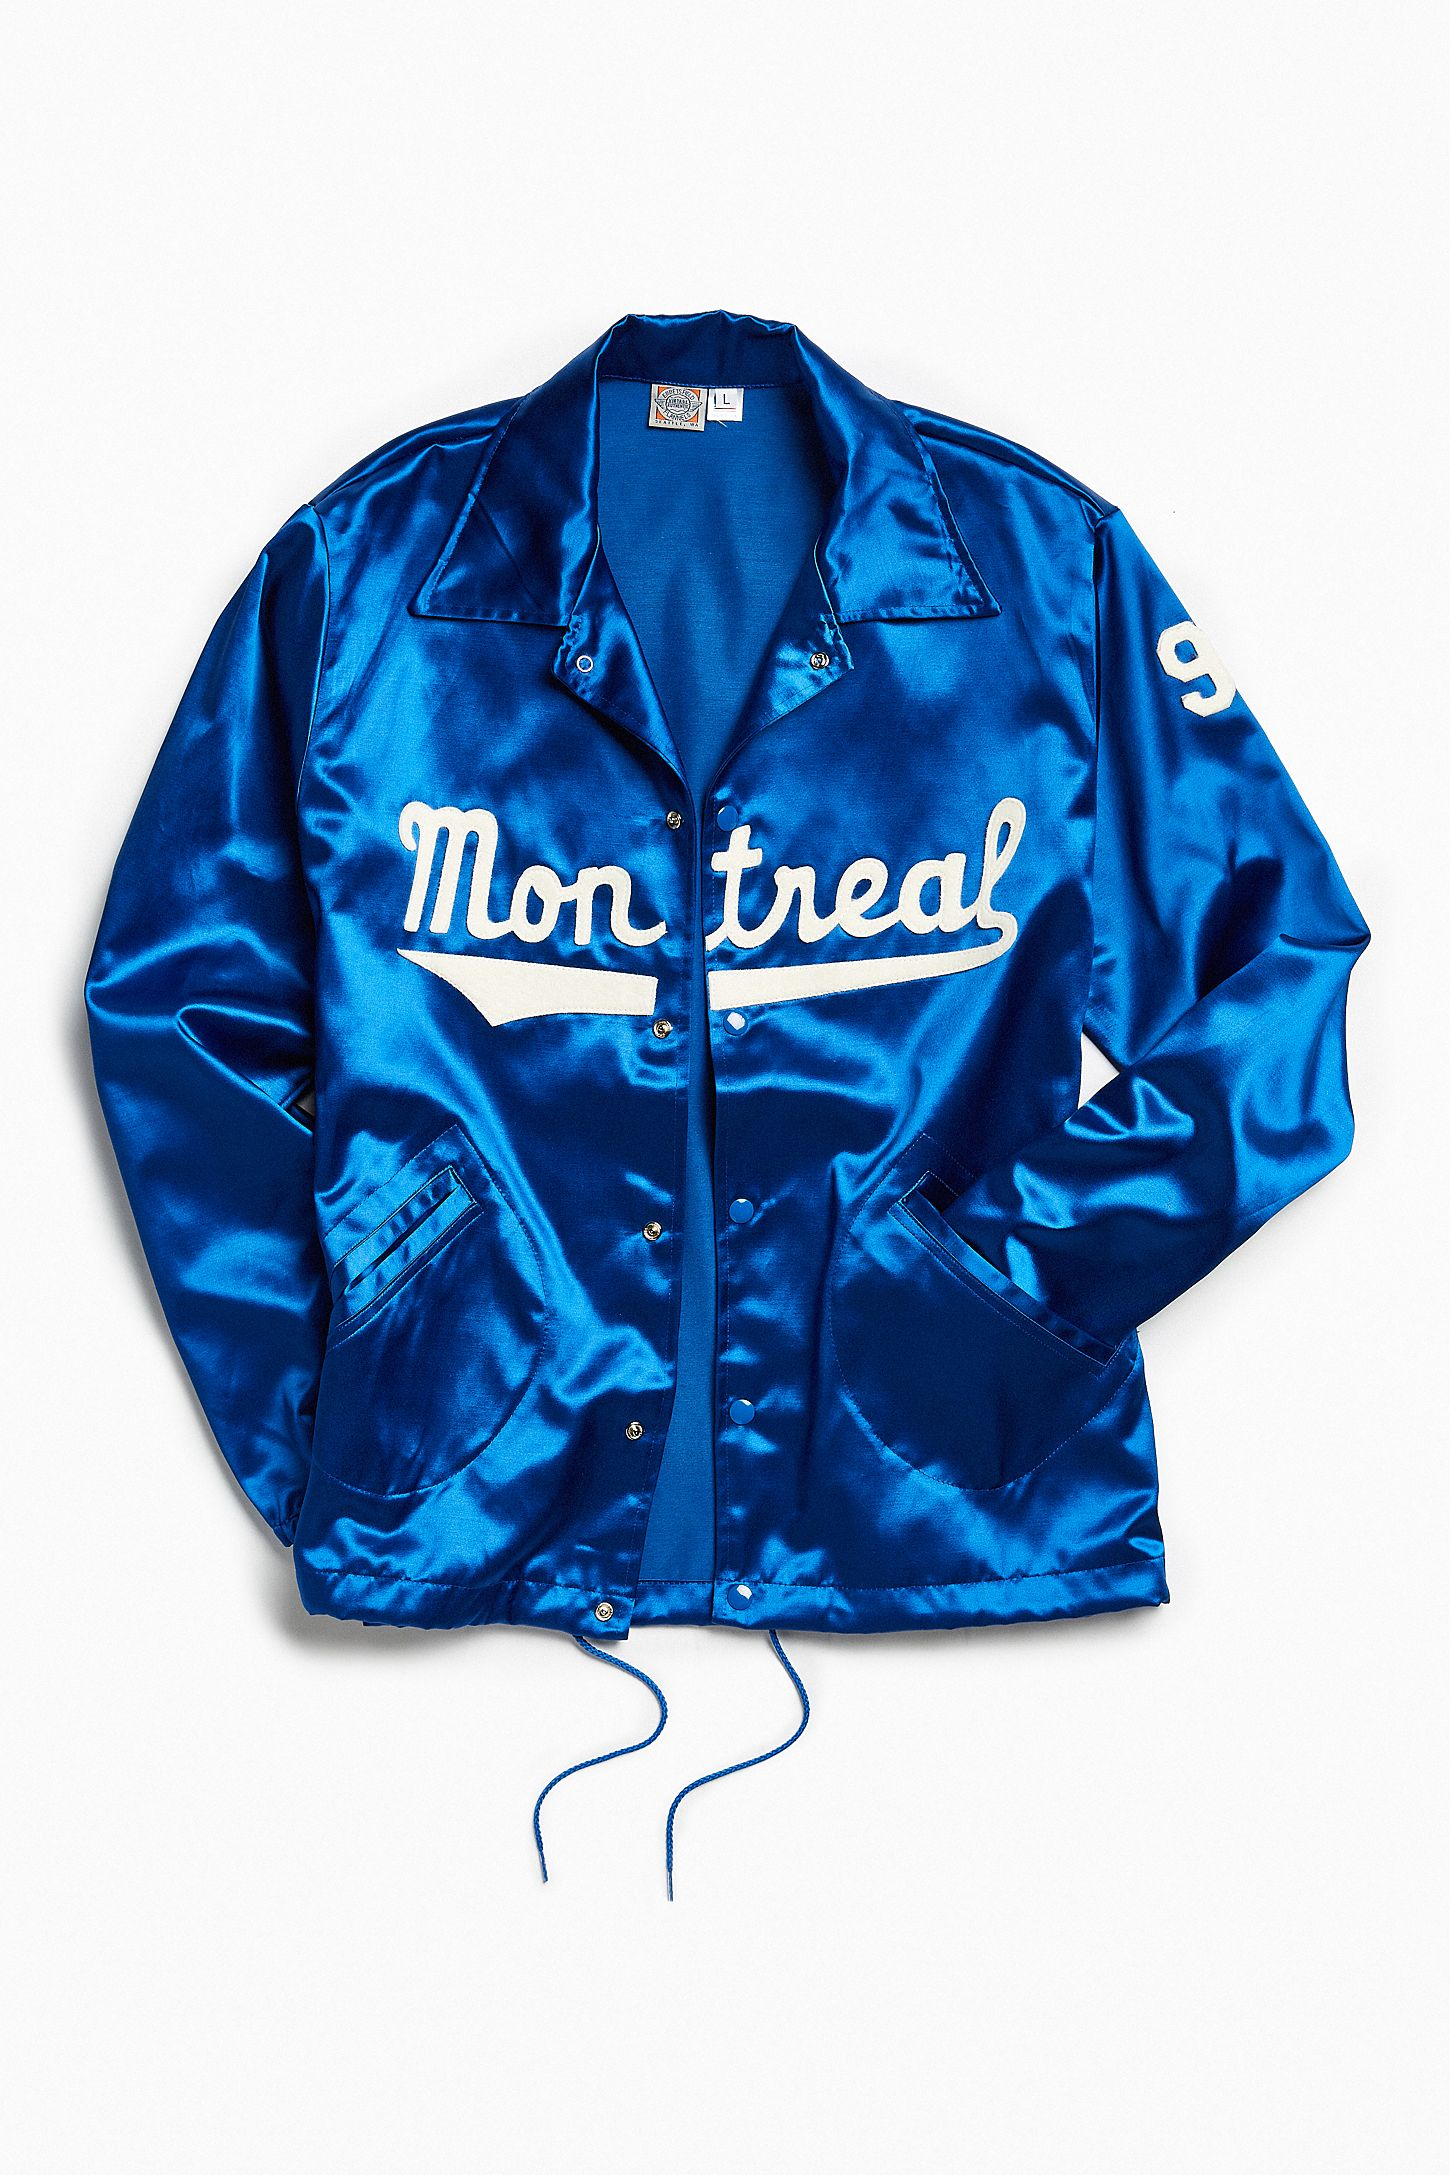 a94826444bc37 Ebbets Field Flannels Montreal Royals Satin Coach Jacket